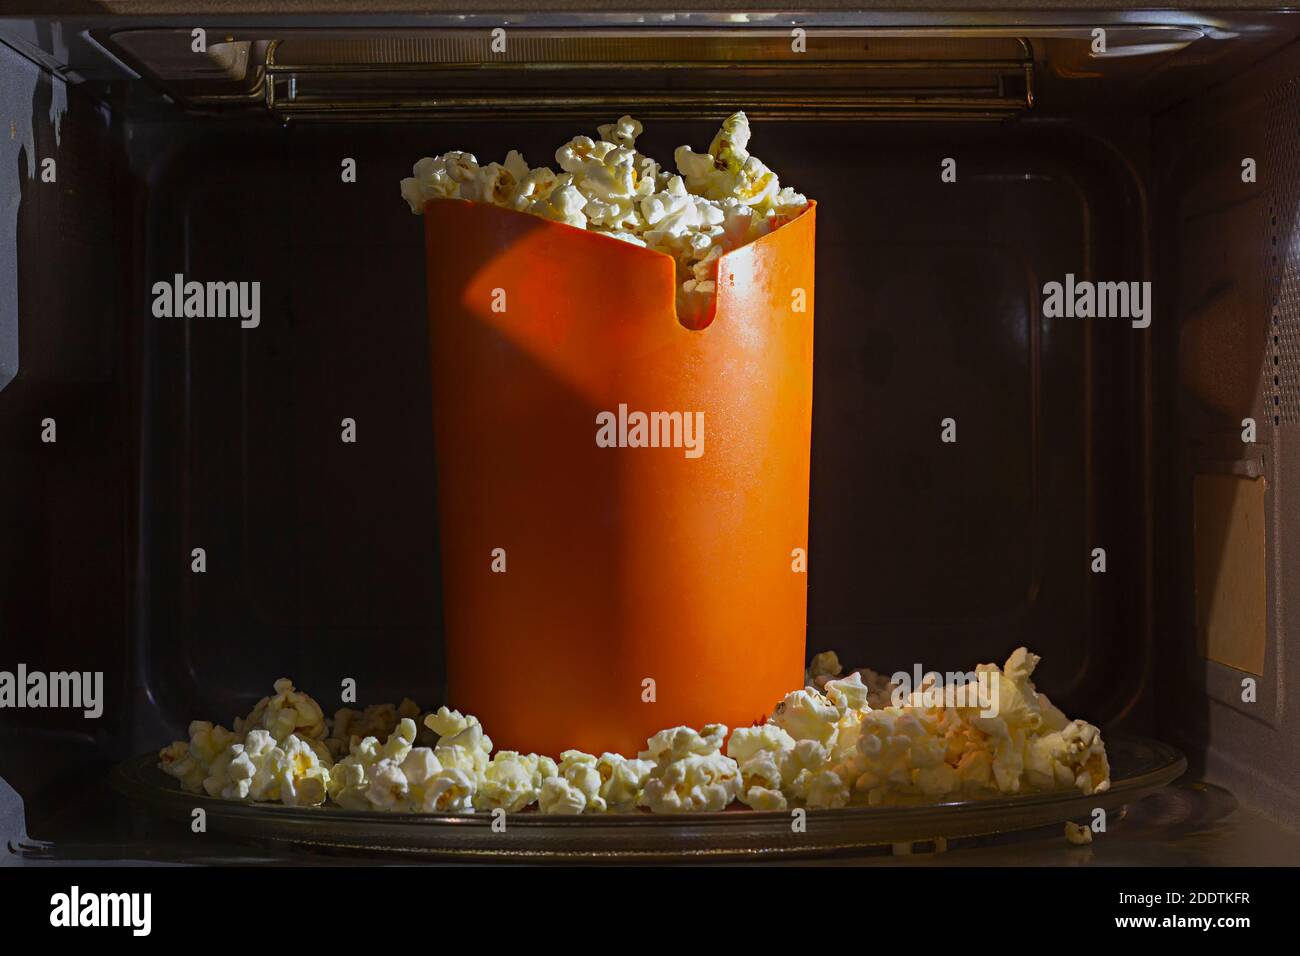 https www alamy com orange silicon bucket filled with homemade cooked popcorn inside a microwave oven special silicon bucket for popcorn microwave cooking at home image387160811 html